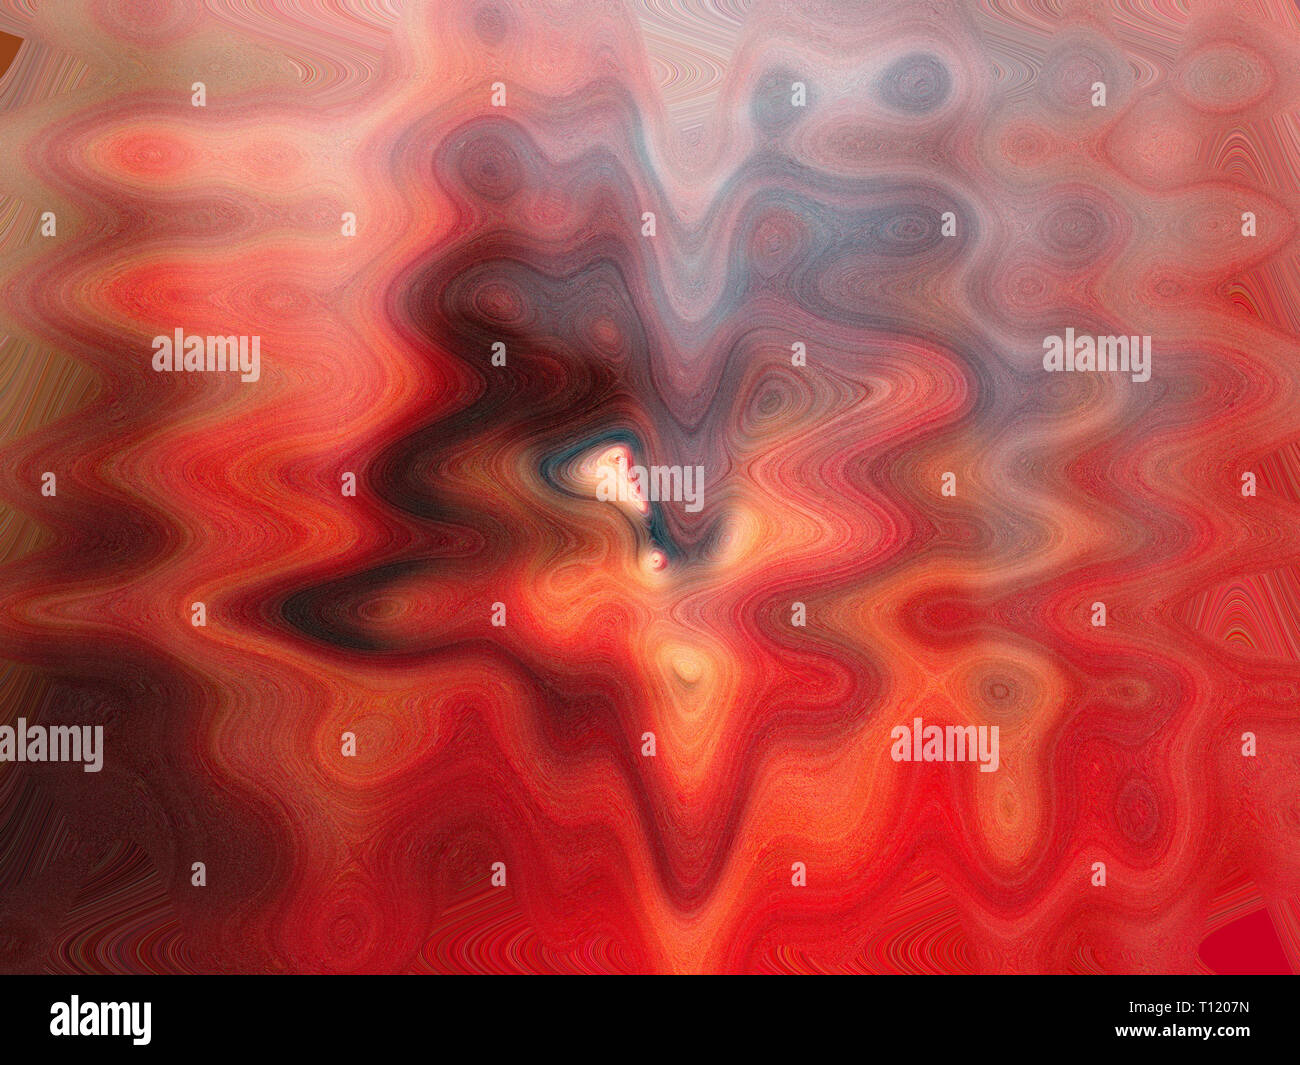 Ripple Effect Stock Photos & Ripple Effect Stock Images - Alamy